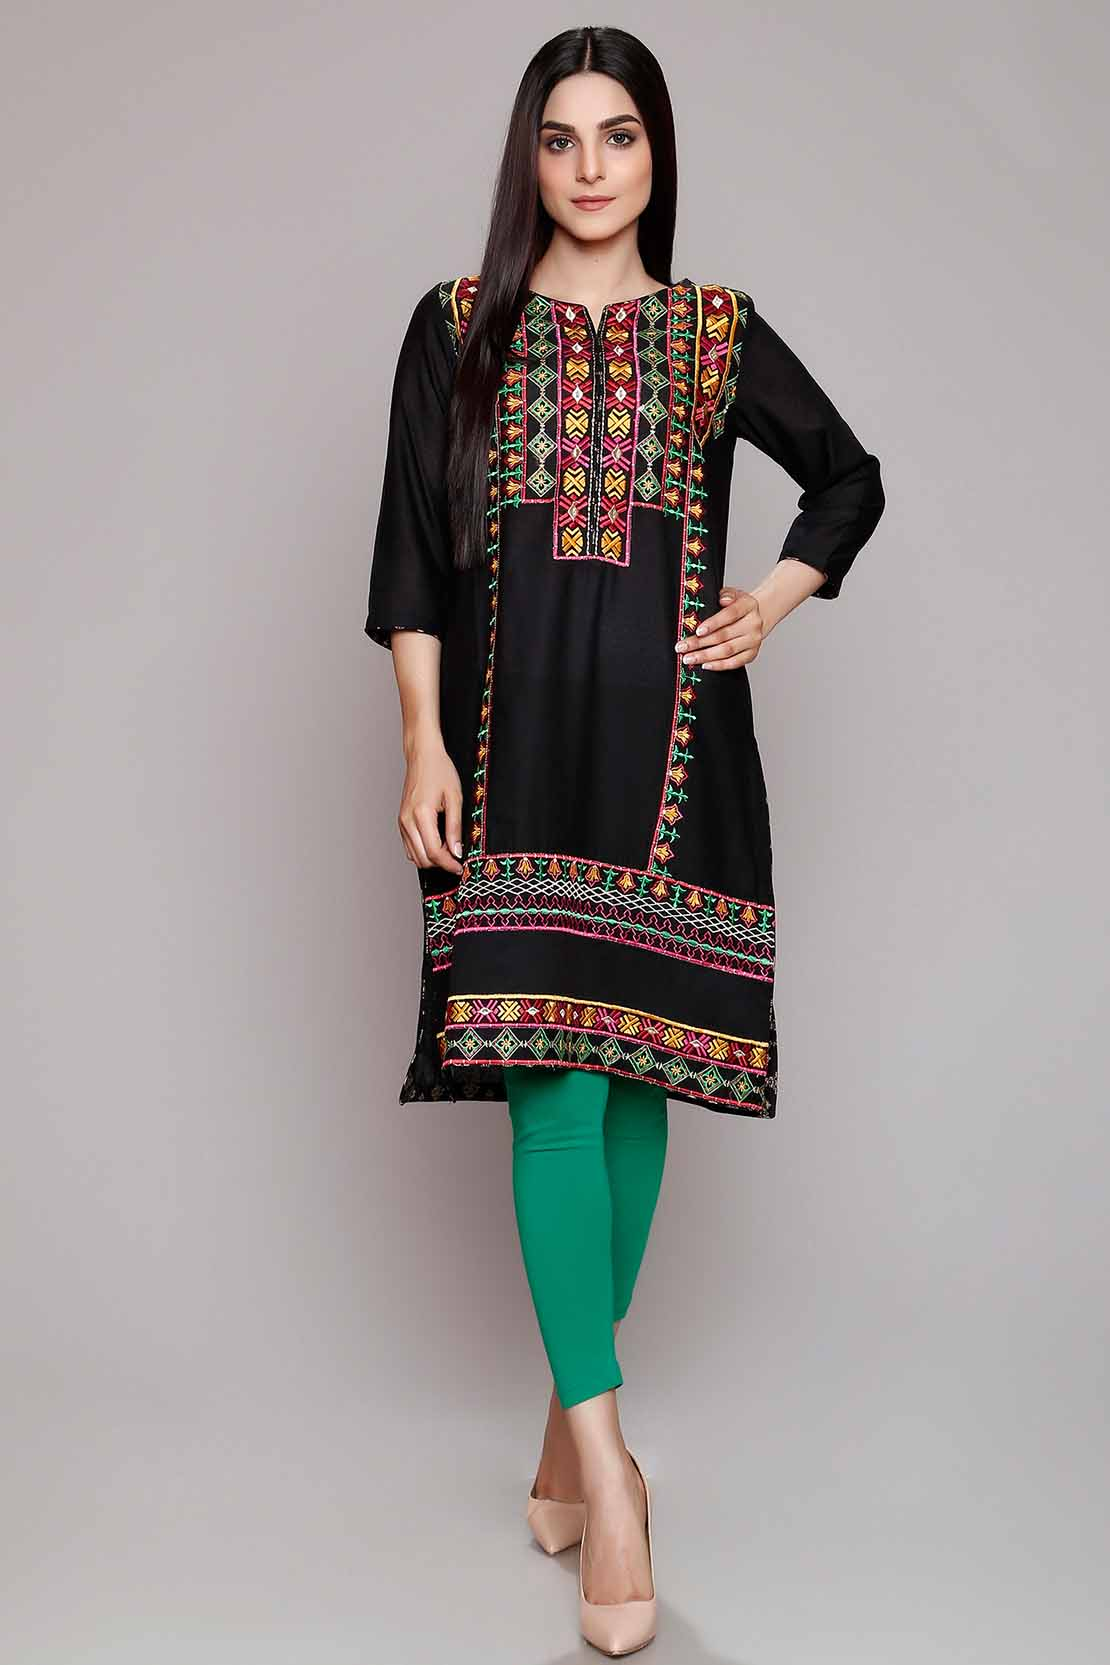 Eid designs kurti recommend dress for everyday in 2019